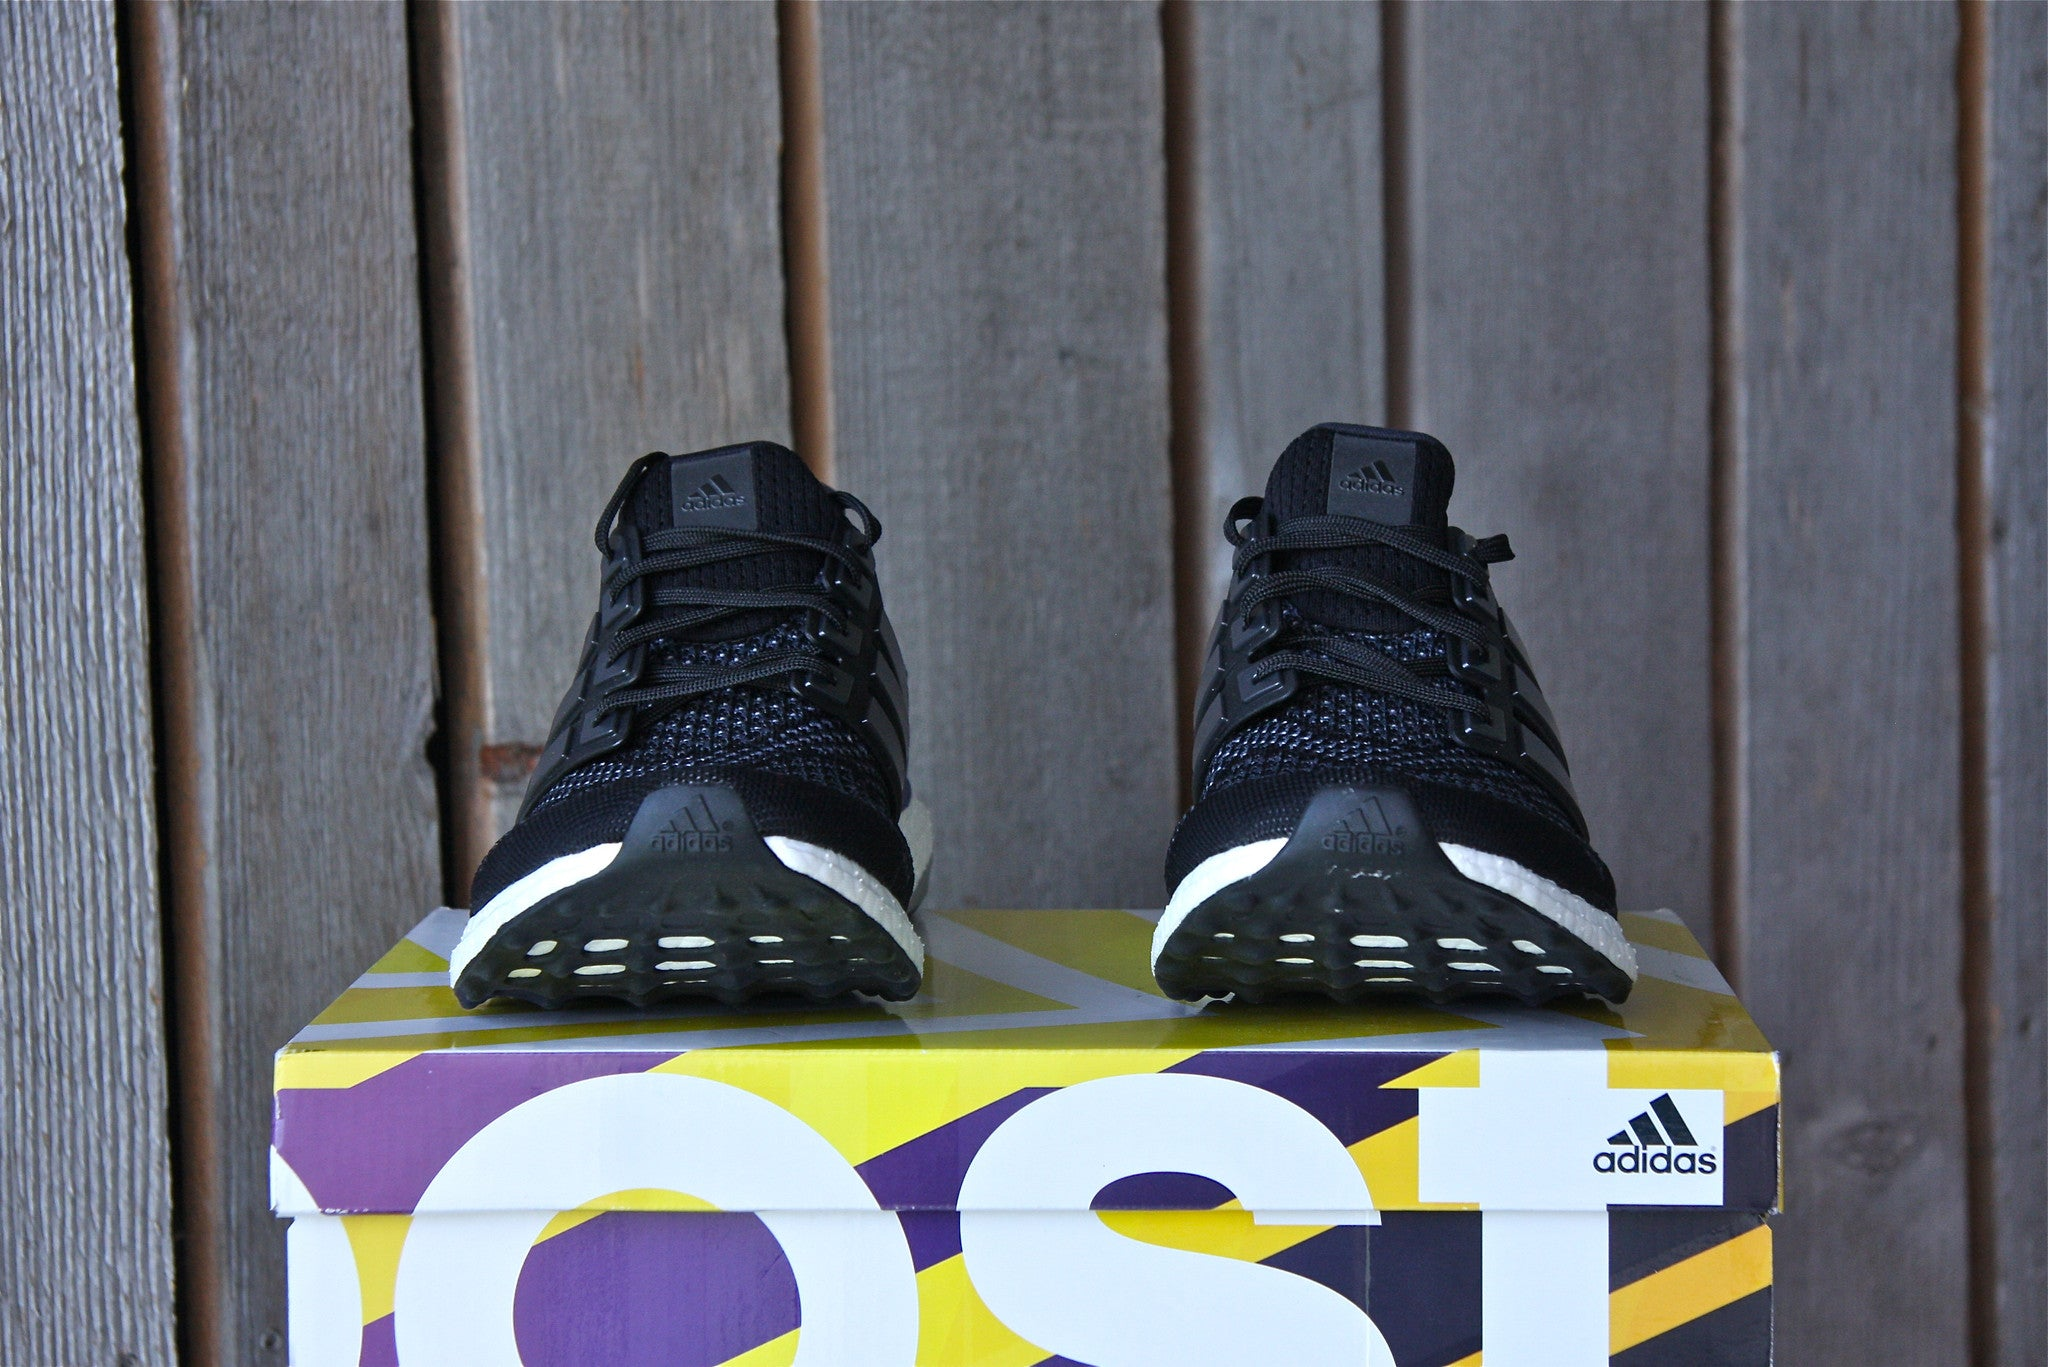 Adidas Ultra Boost 1.0 OG M (Black/Gold/Purple)